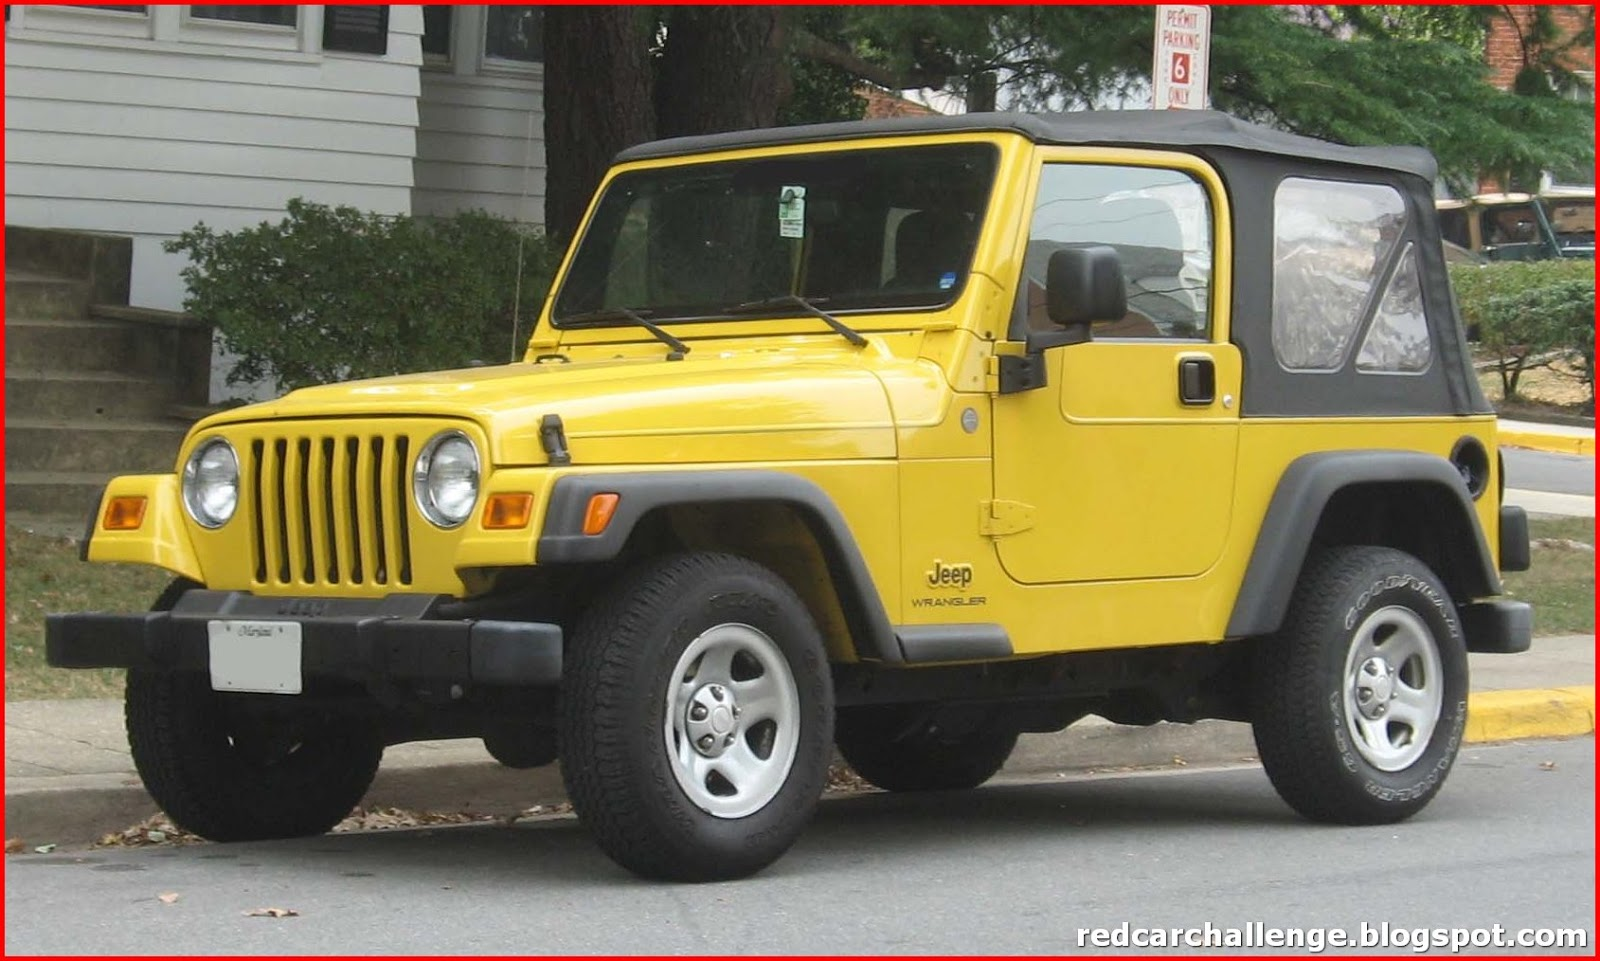 Types of Jeep Wranglers